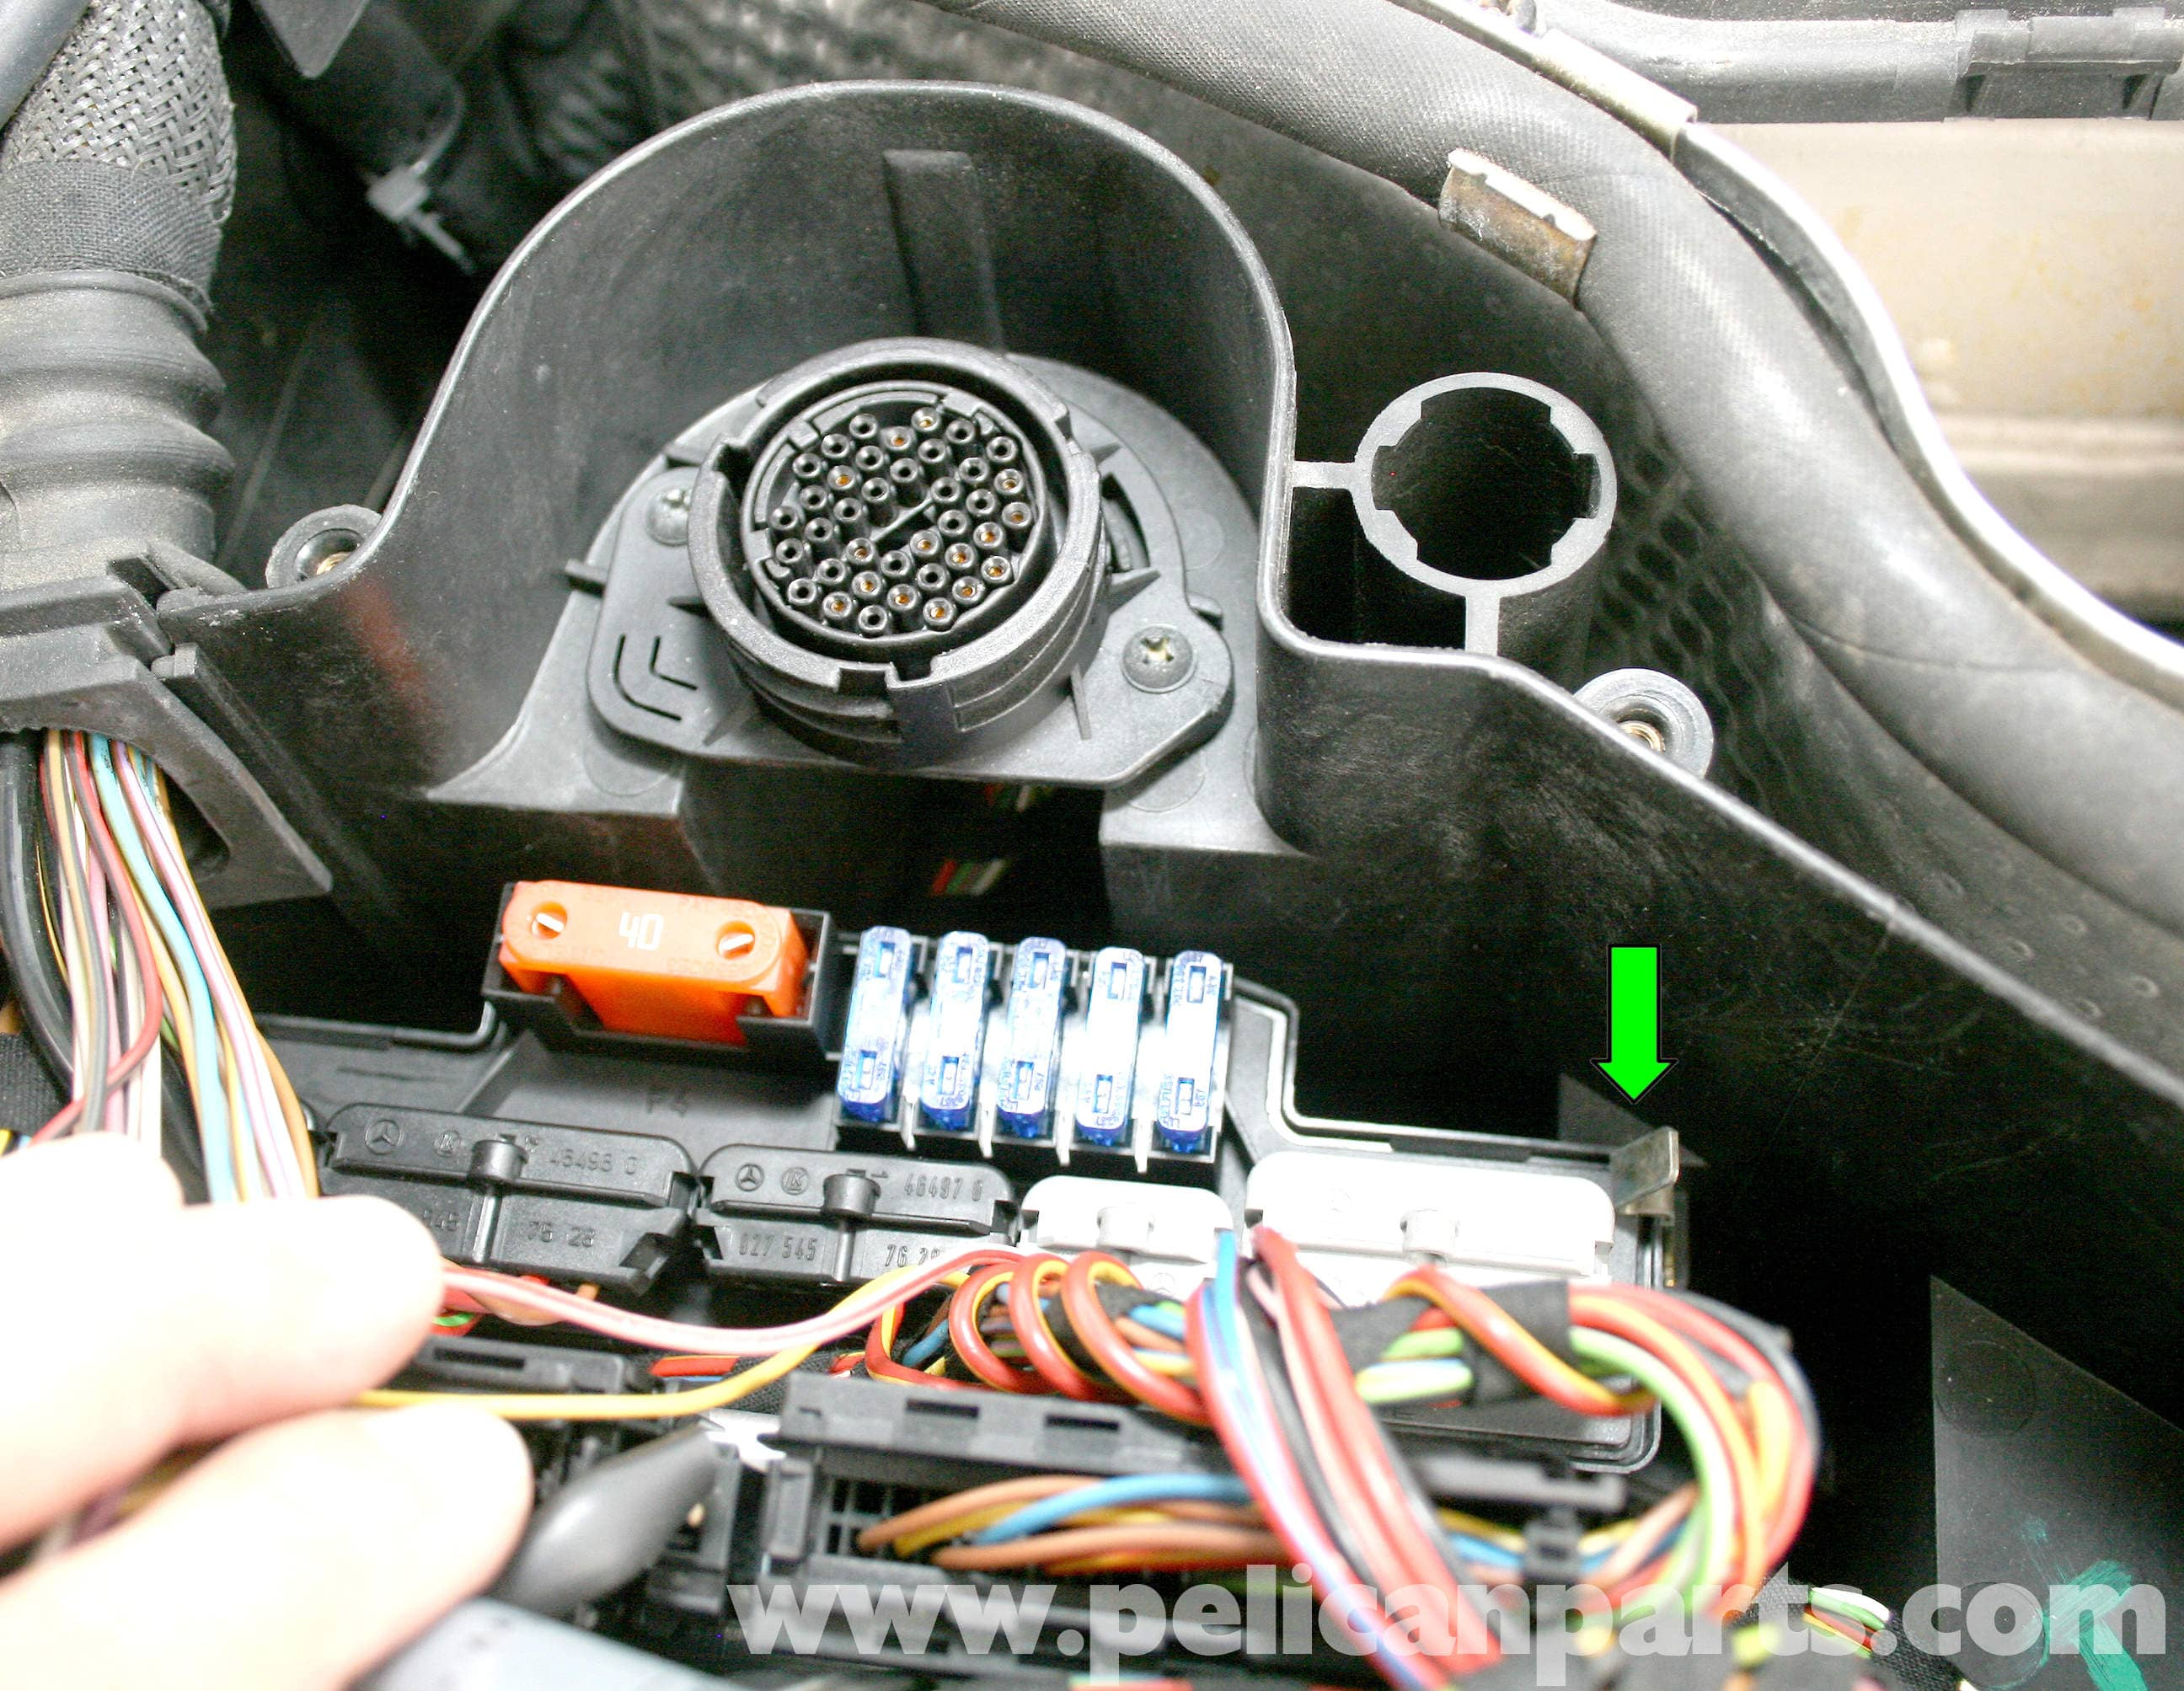 MercedesBenz SLK 230 K40 Overload Protection Relay Repair 1998